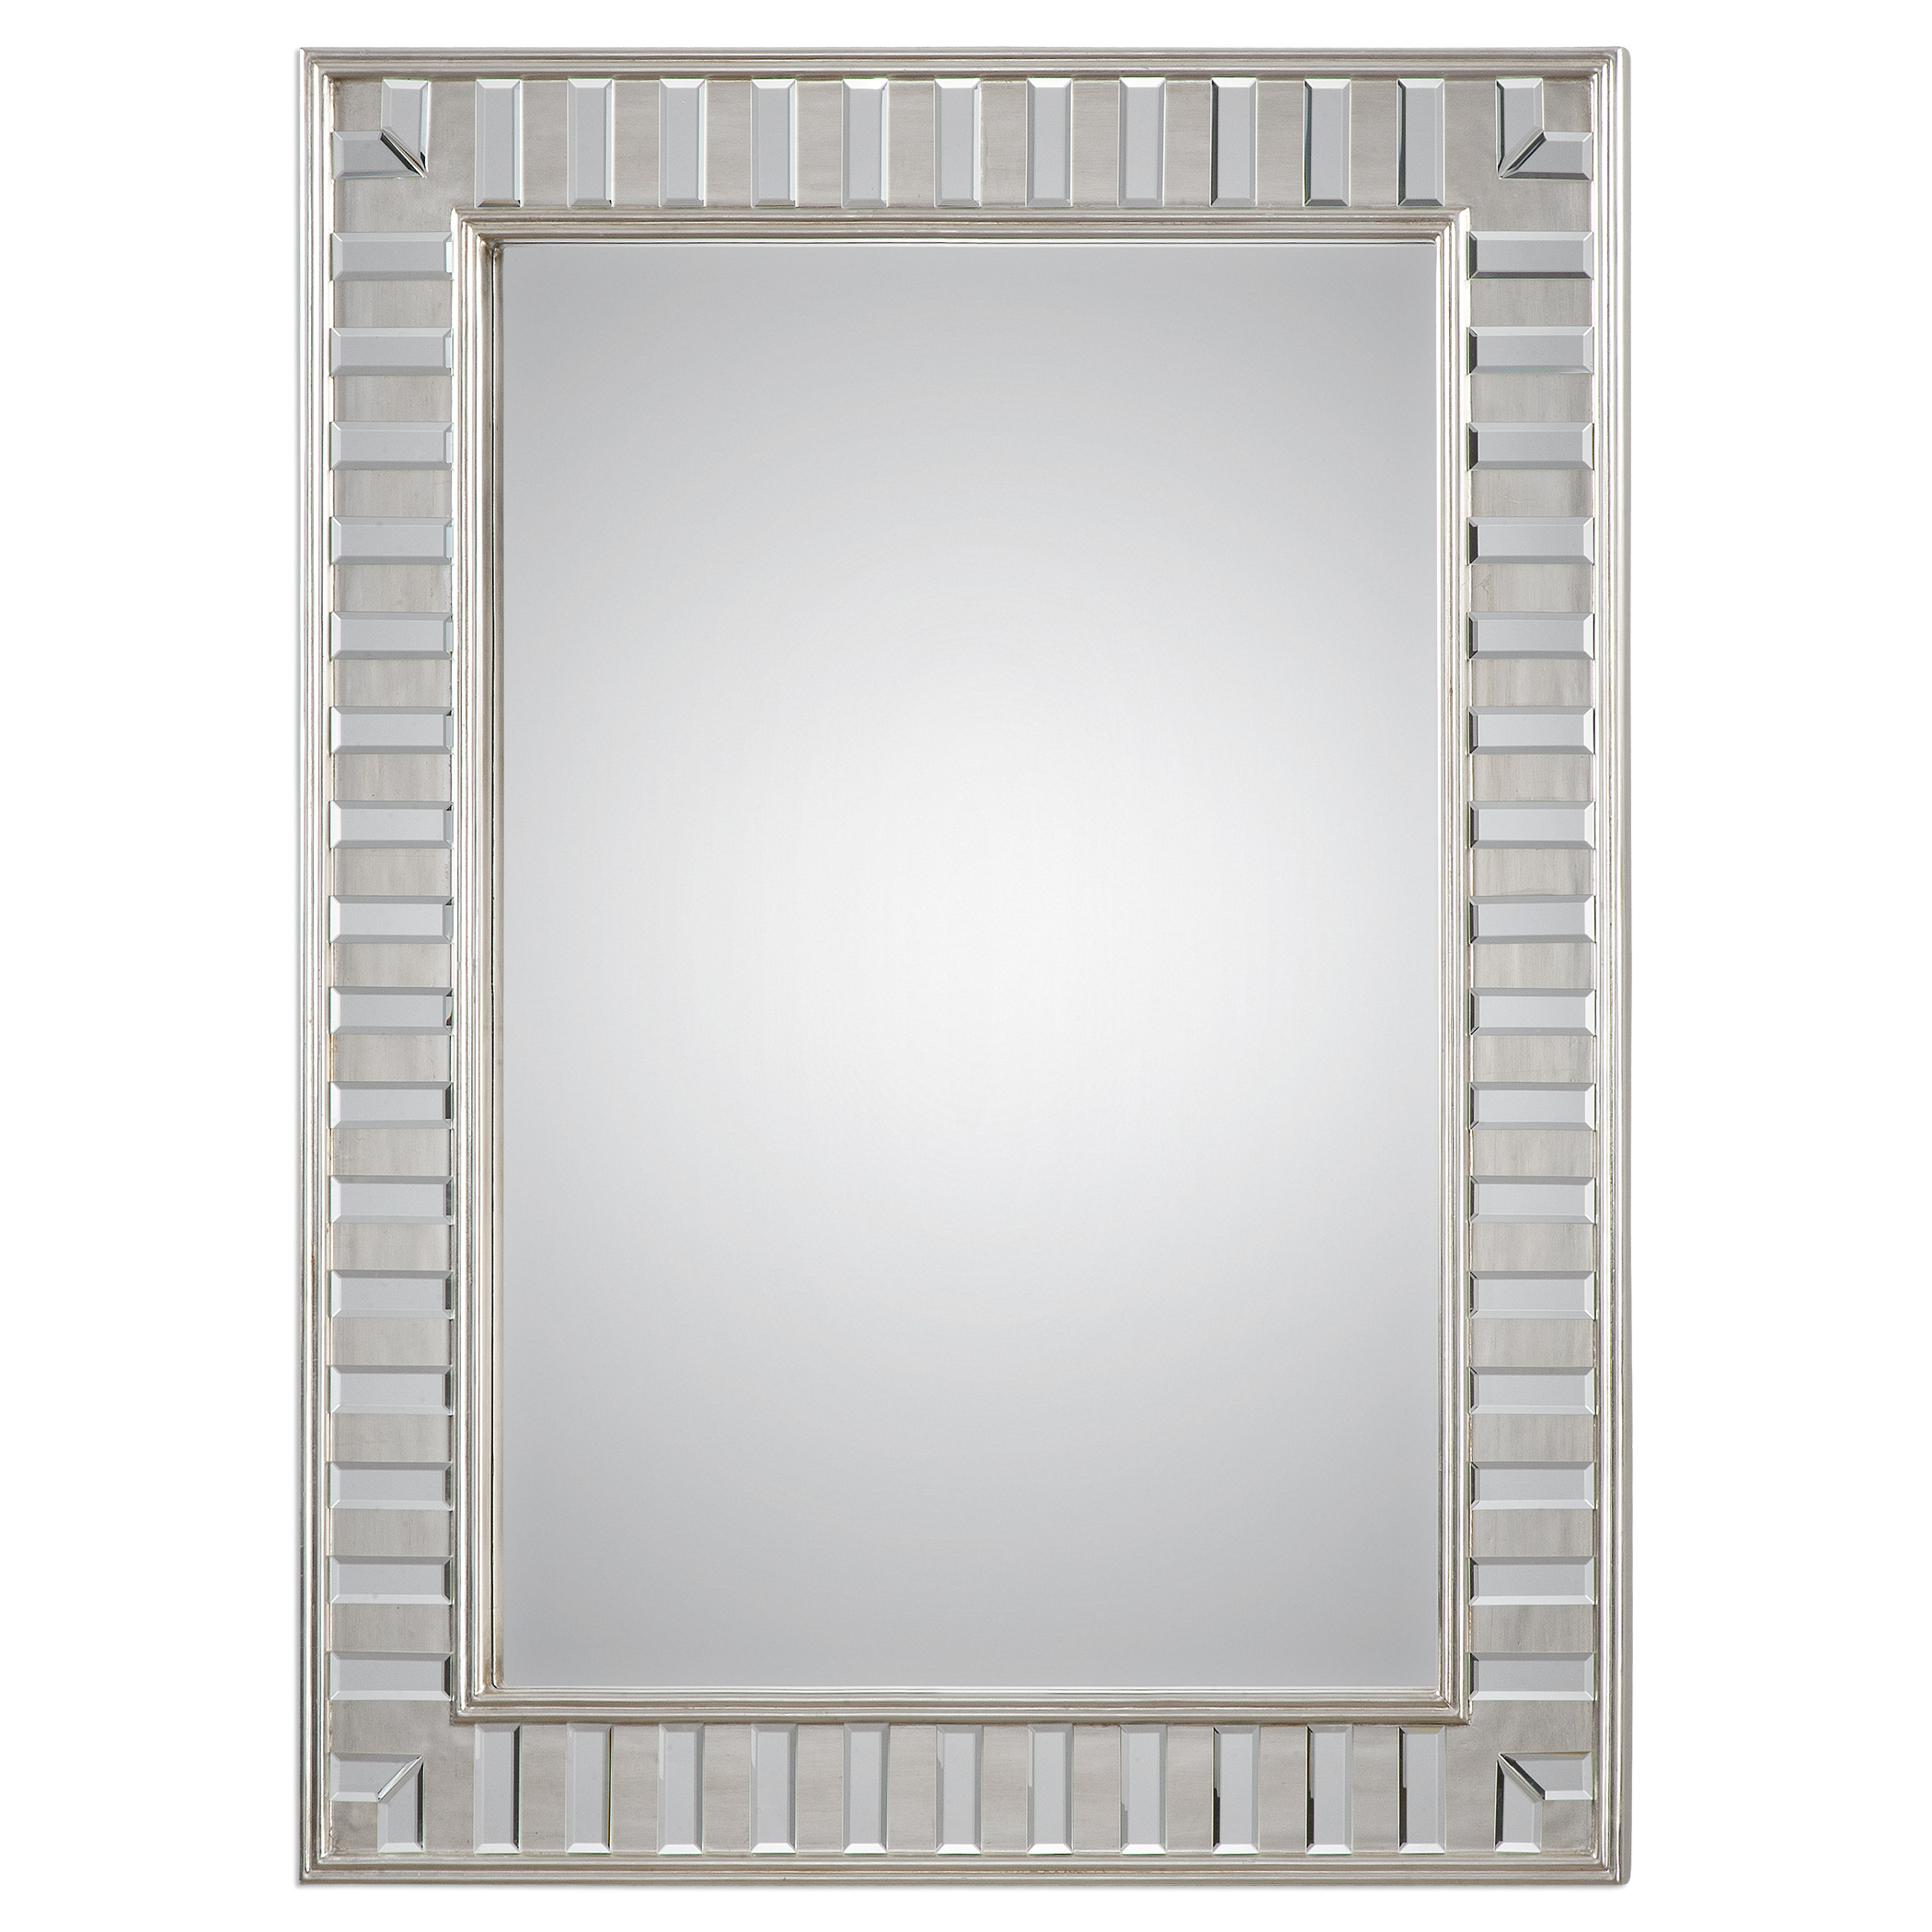 Uttermost Mirrors Lanester Silver Leaf Mirror - Item Number: 09046